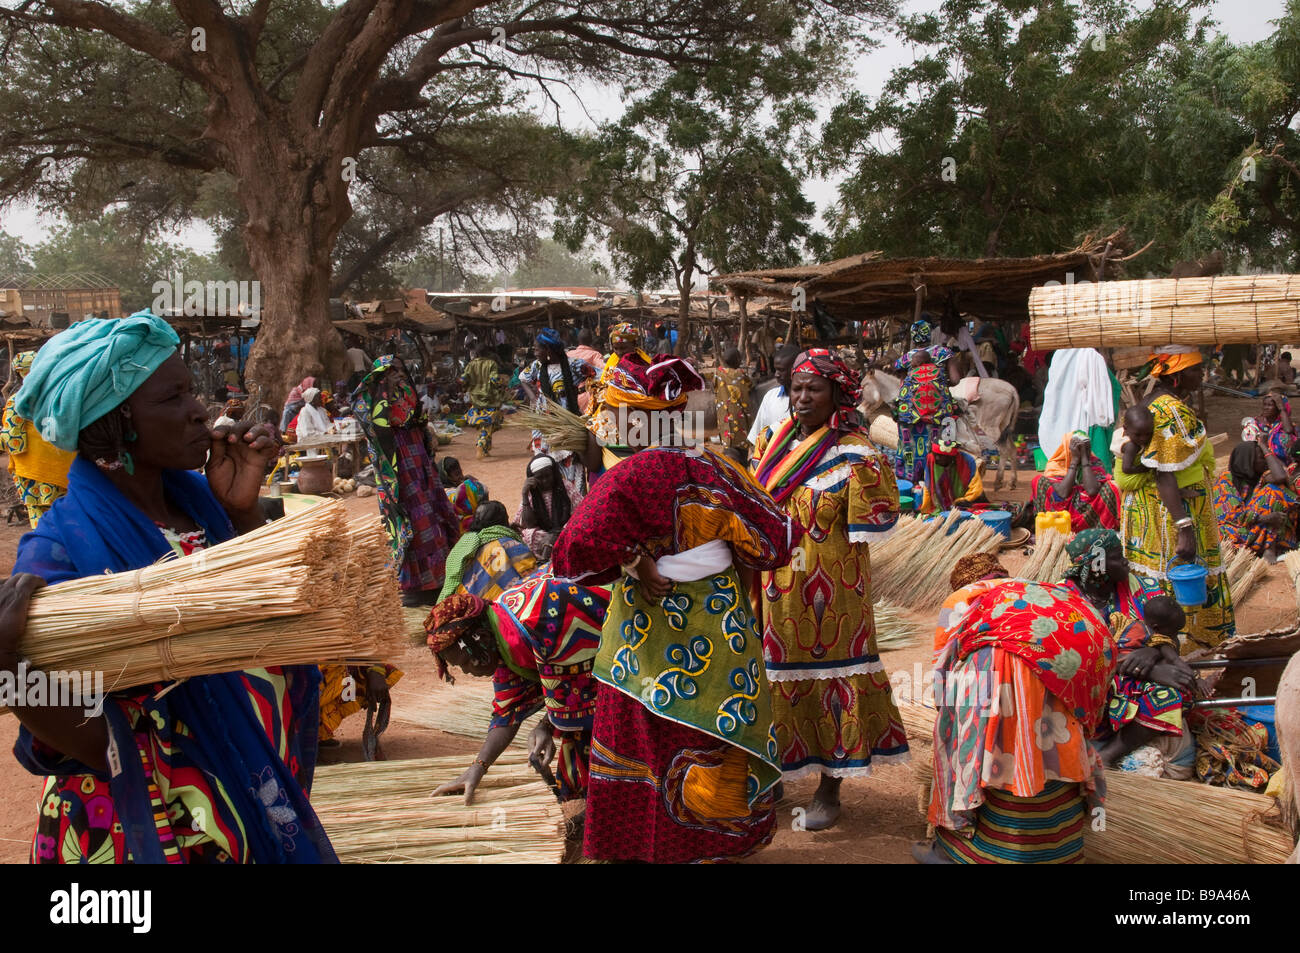 Western Africa Sahel Burkina Fasso Gorom Gorom One of the largest Weekly market in Sahel - Stock Image